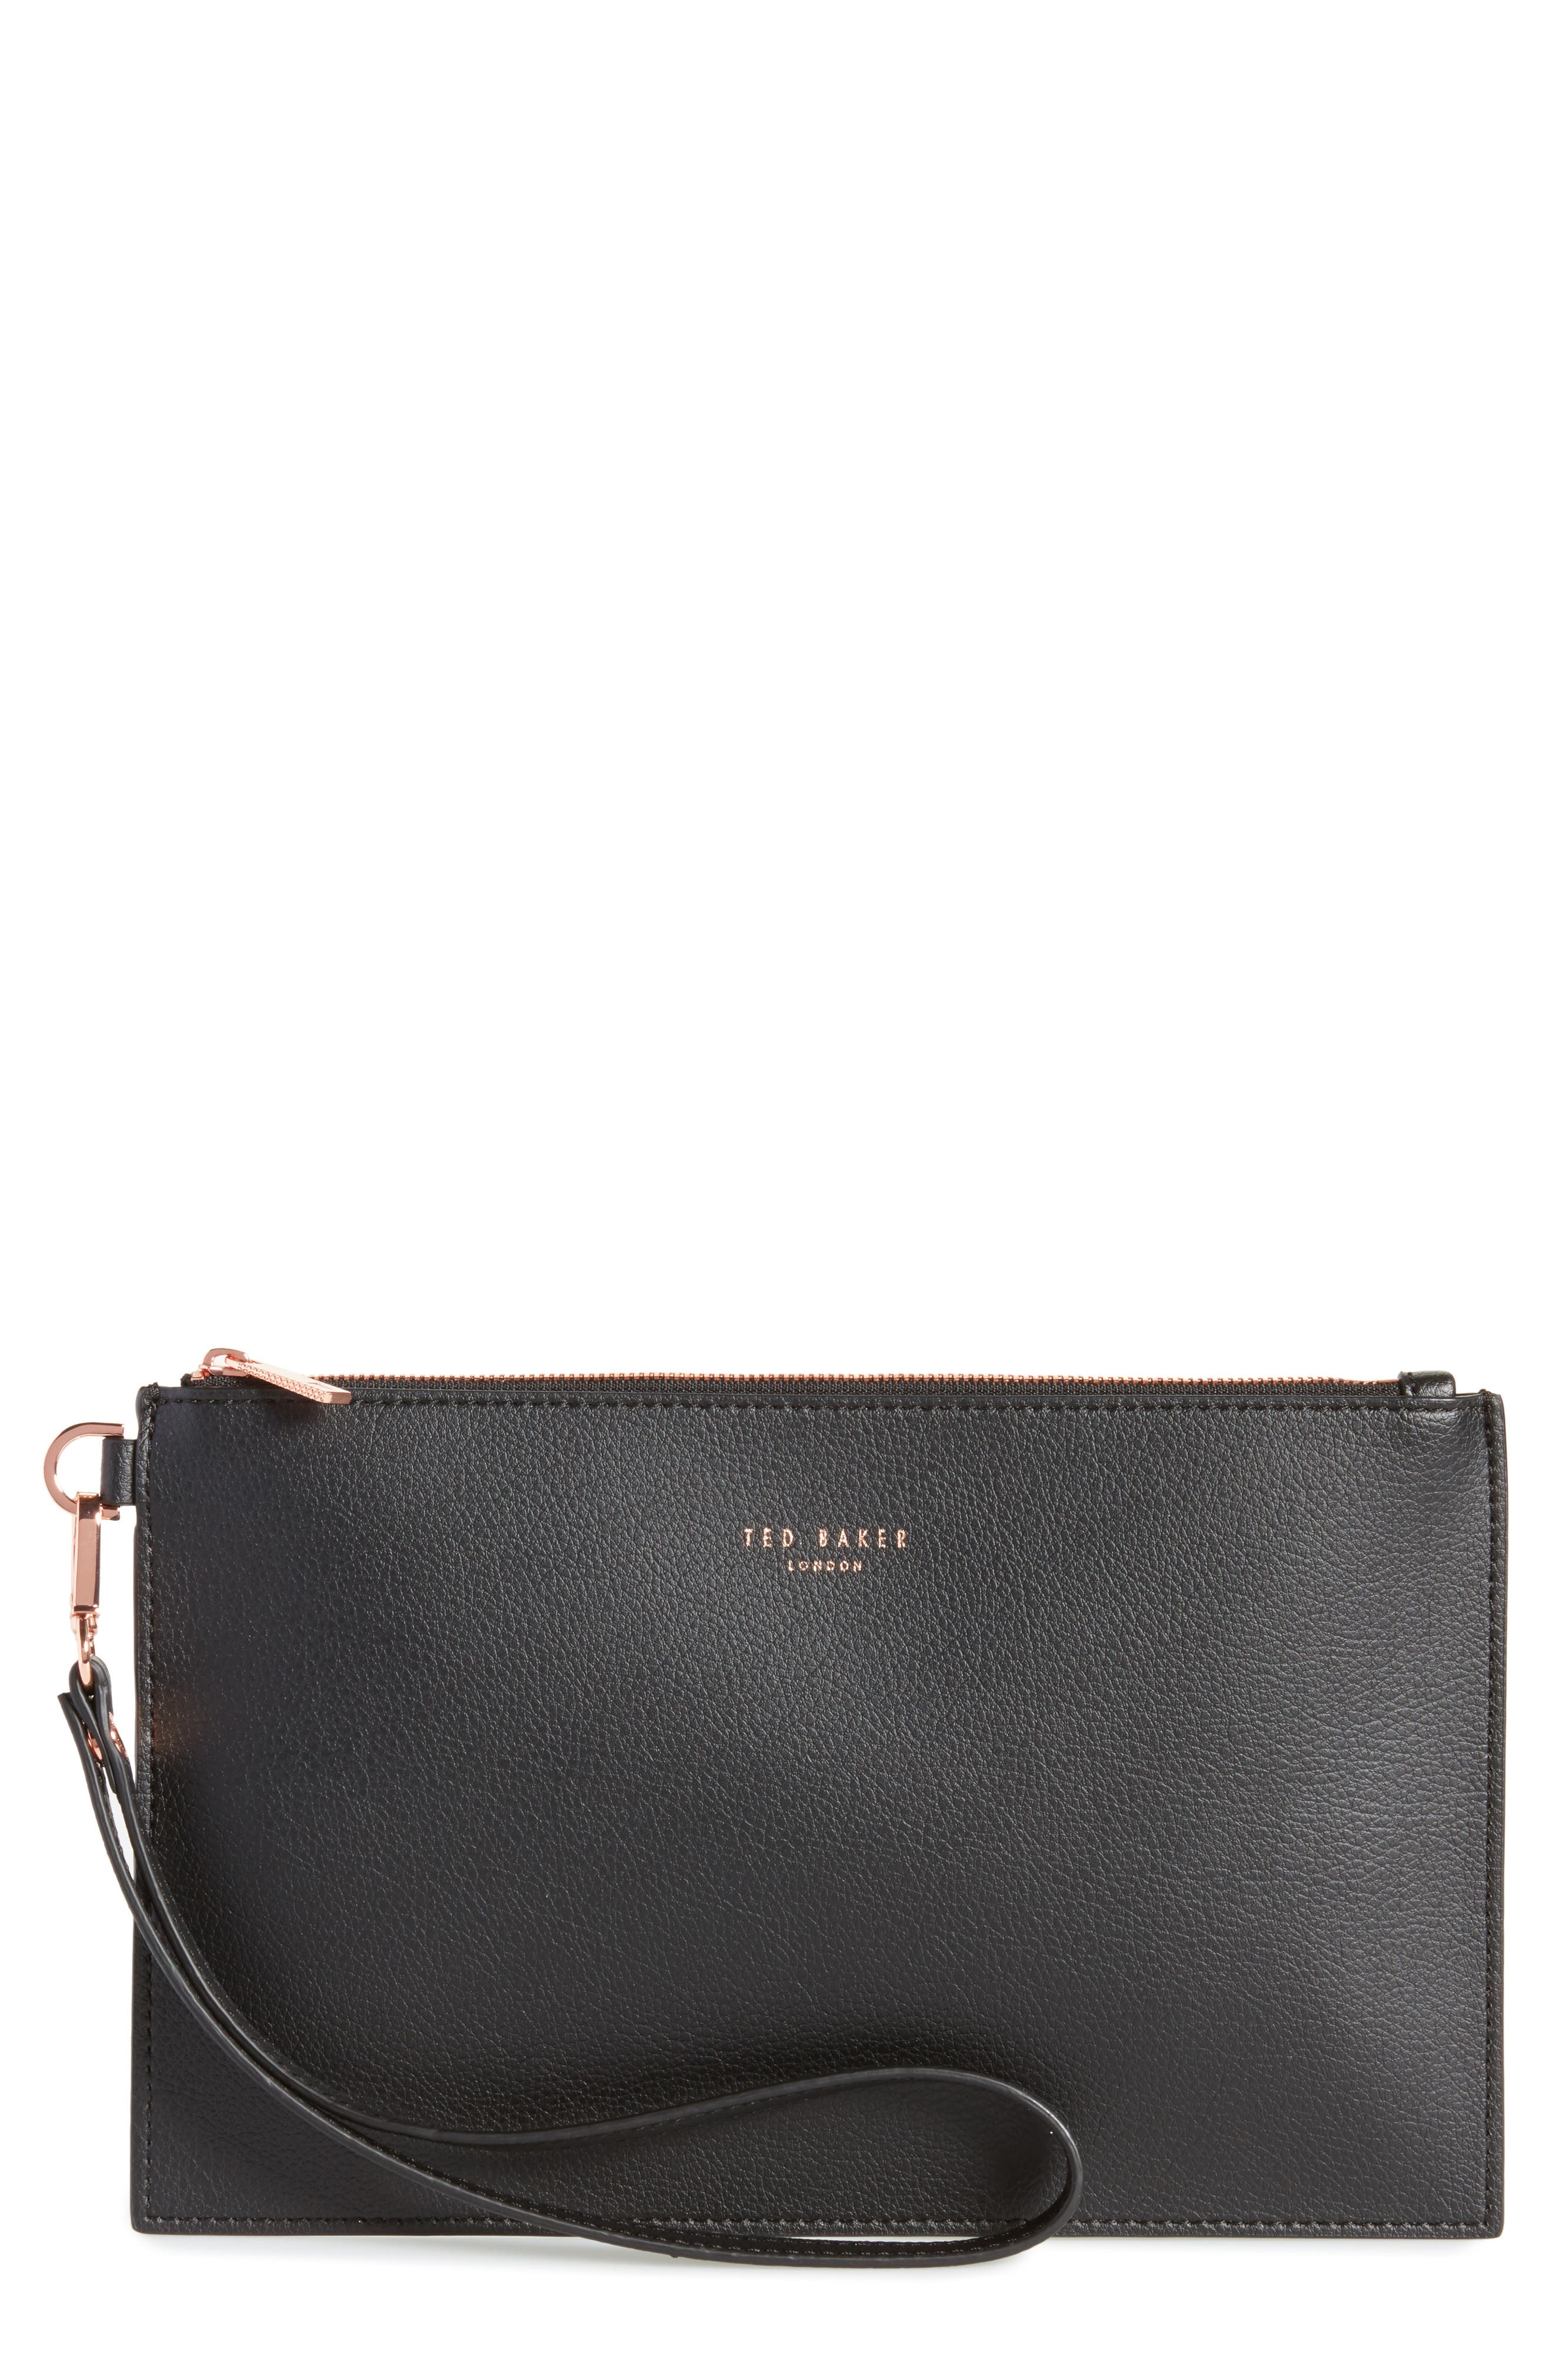 Ted Baker London Top Zip Faux Leather Pouch